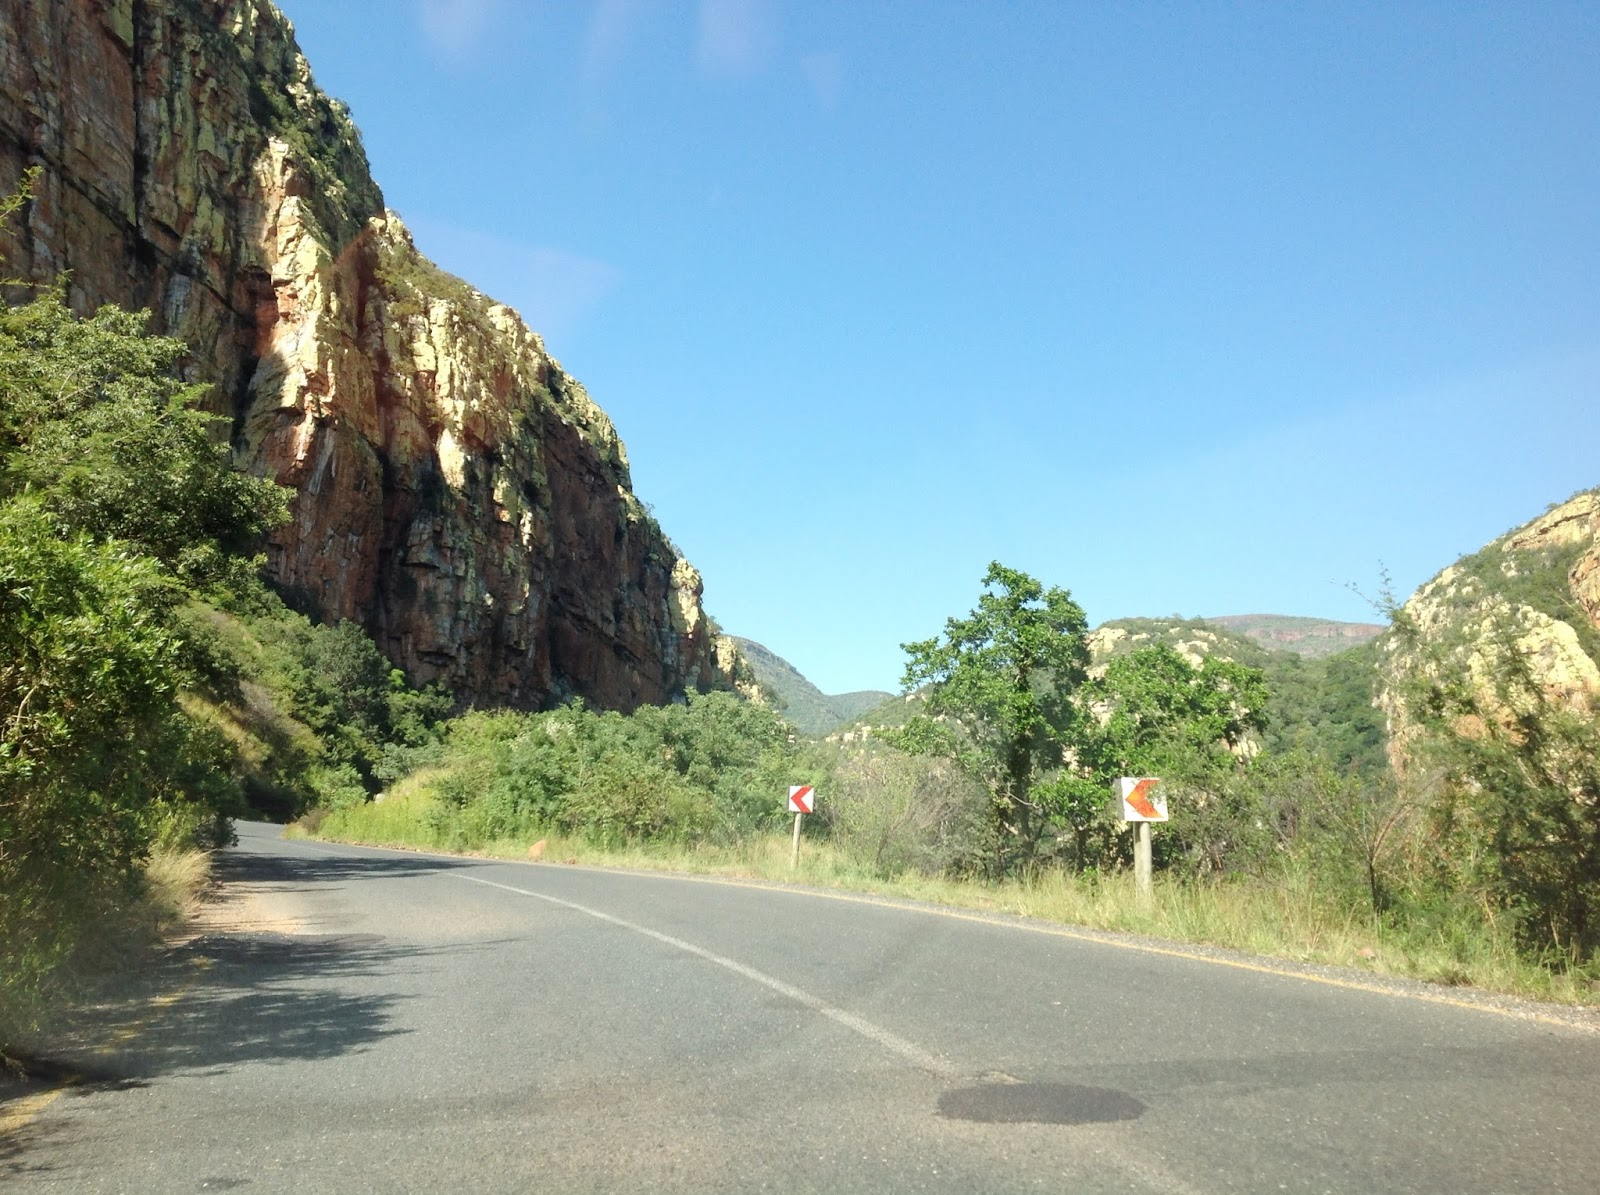 Ohrigstad South Africa  city photos gallery : ... break through spectacular views that make me so proudly South African